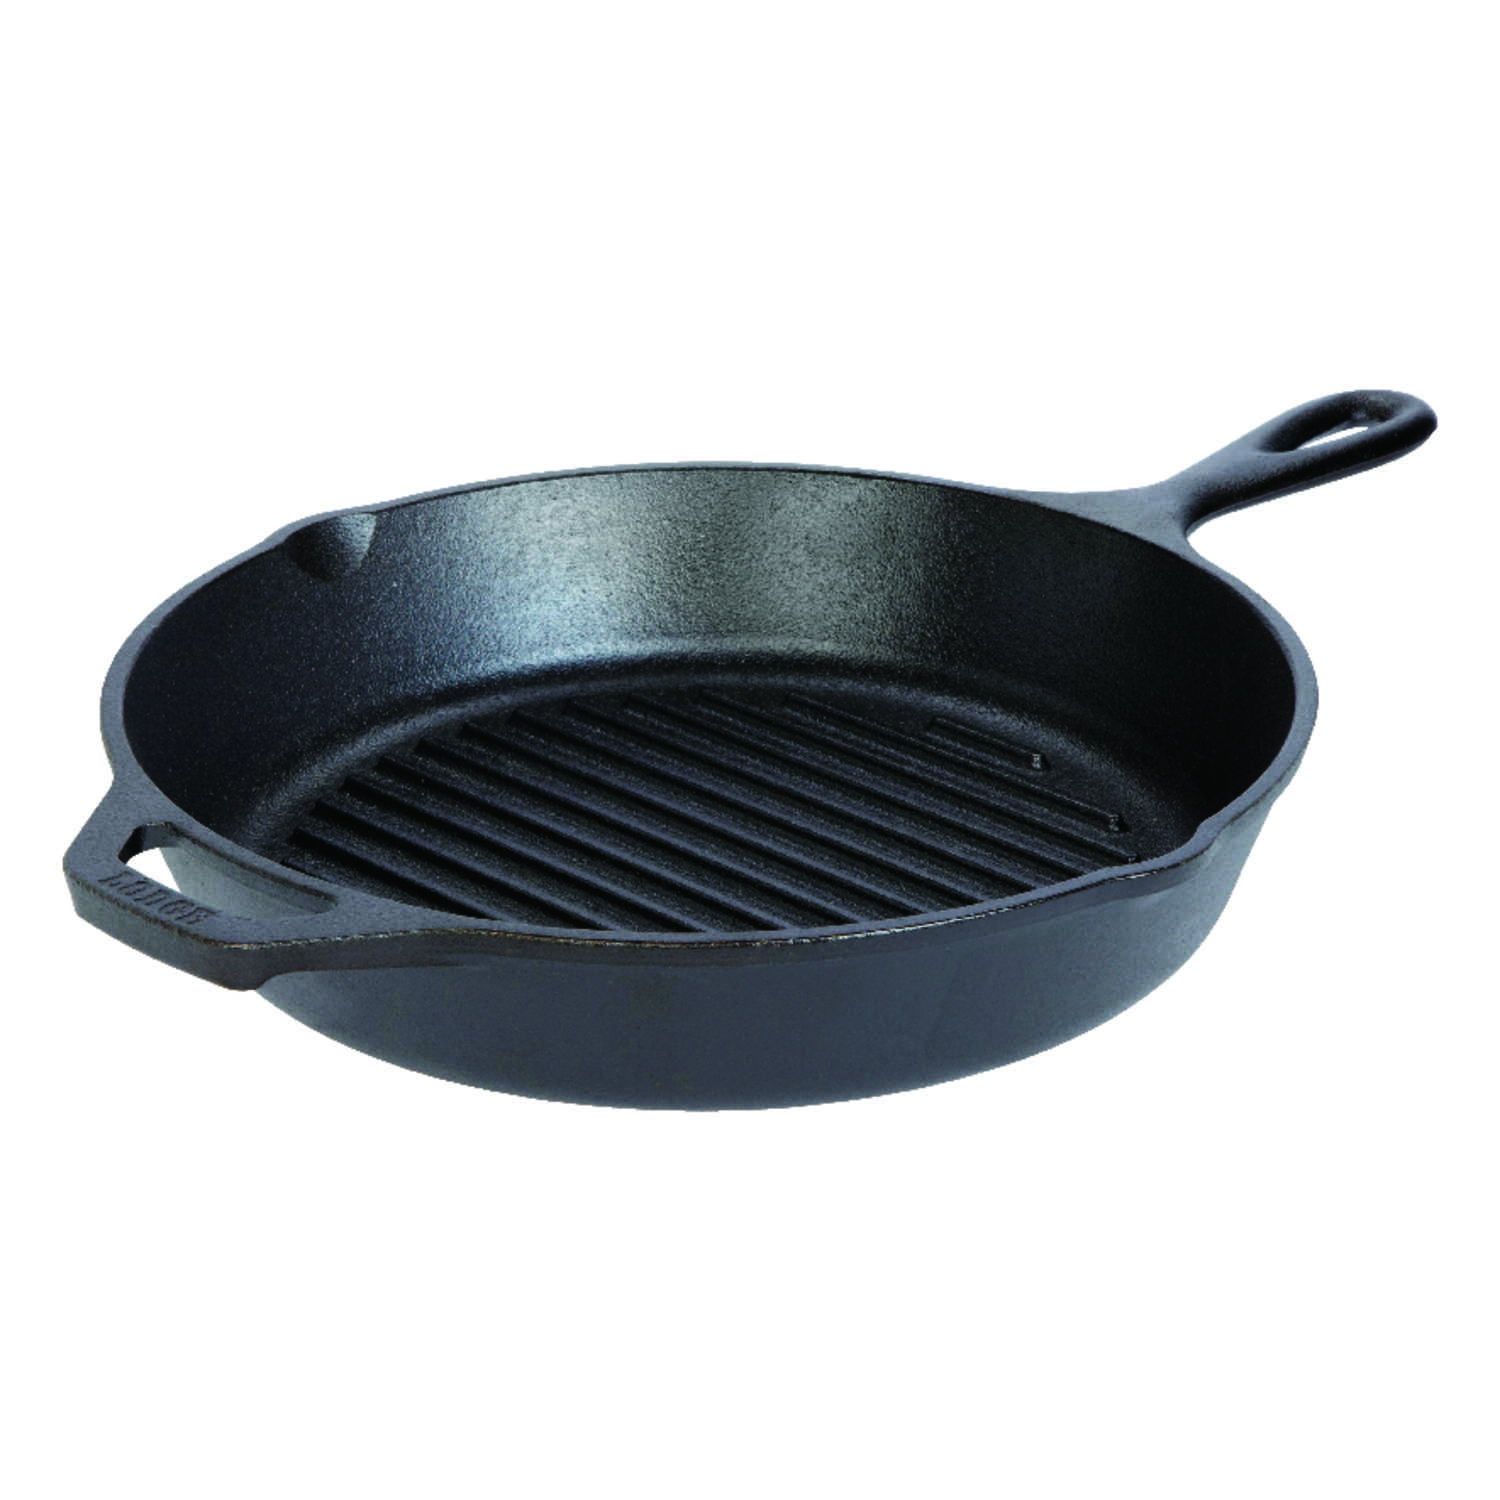 Lodge  Cast Iron  Fry Pan  10-1/4 in. Black